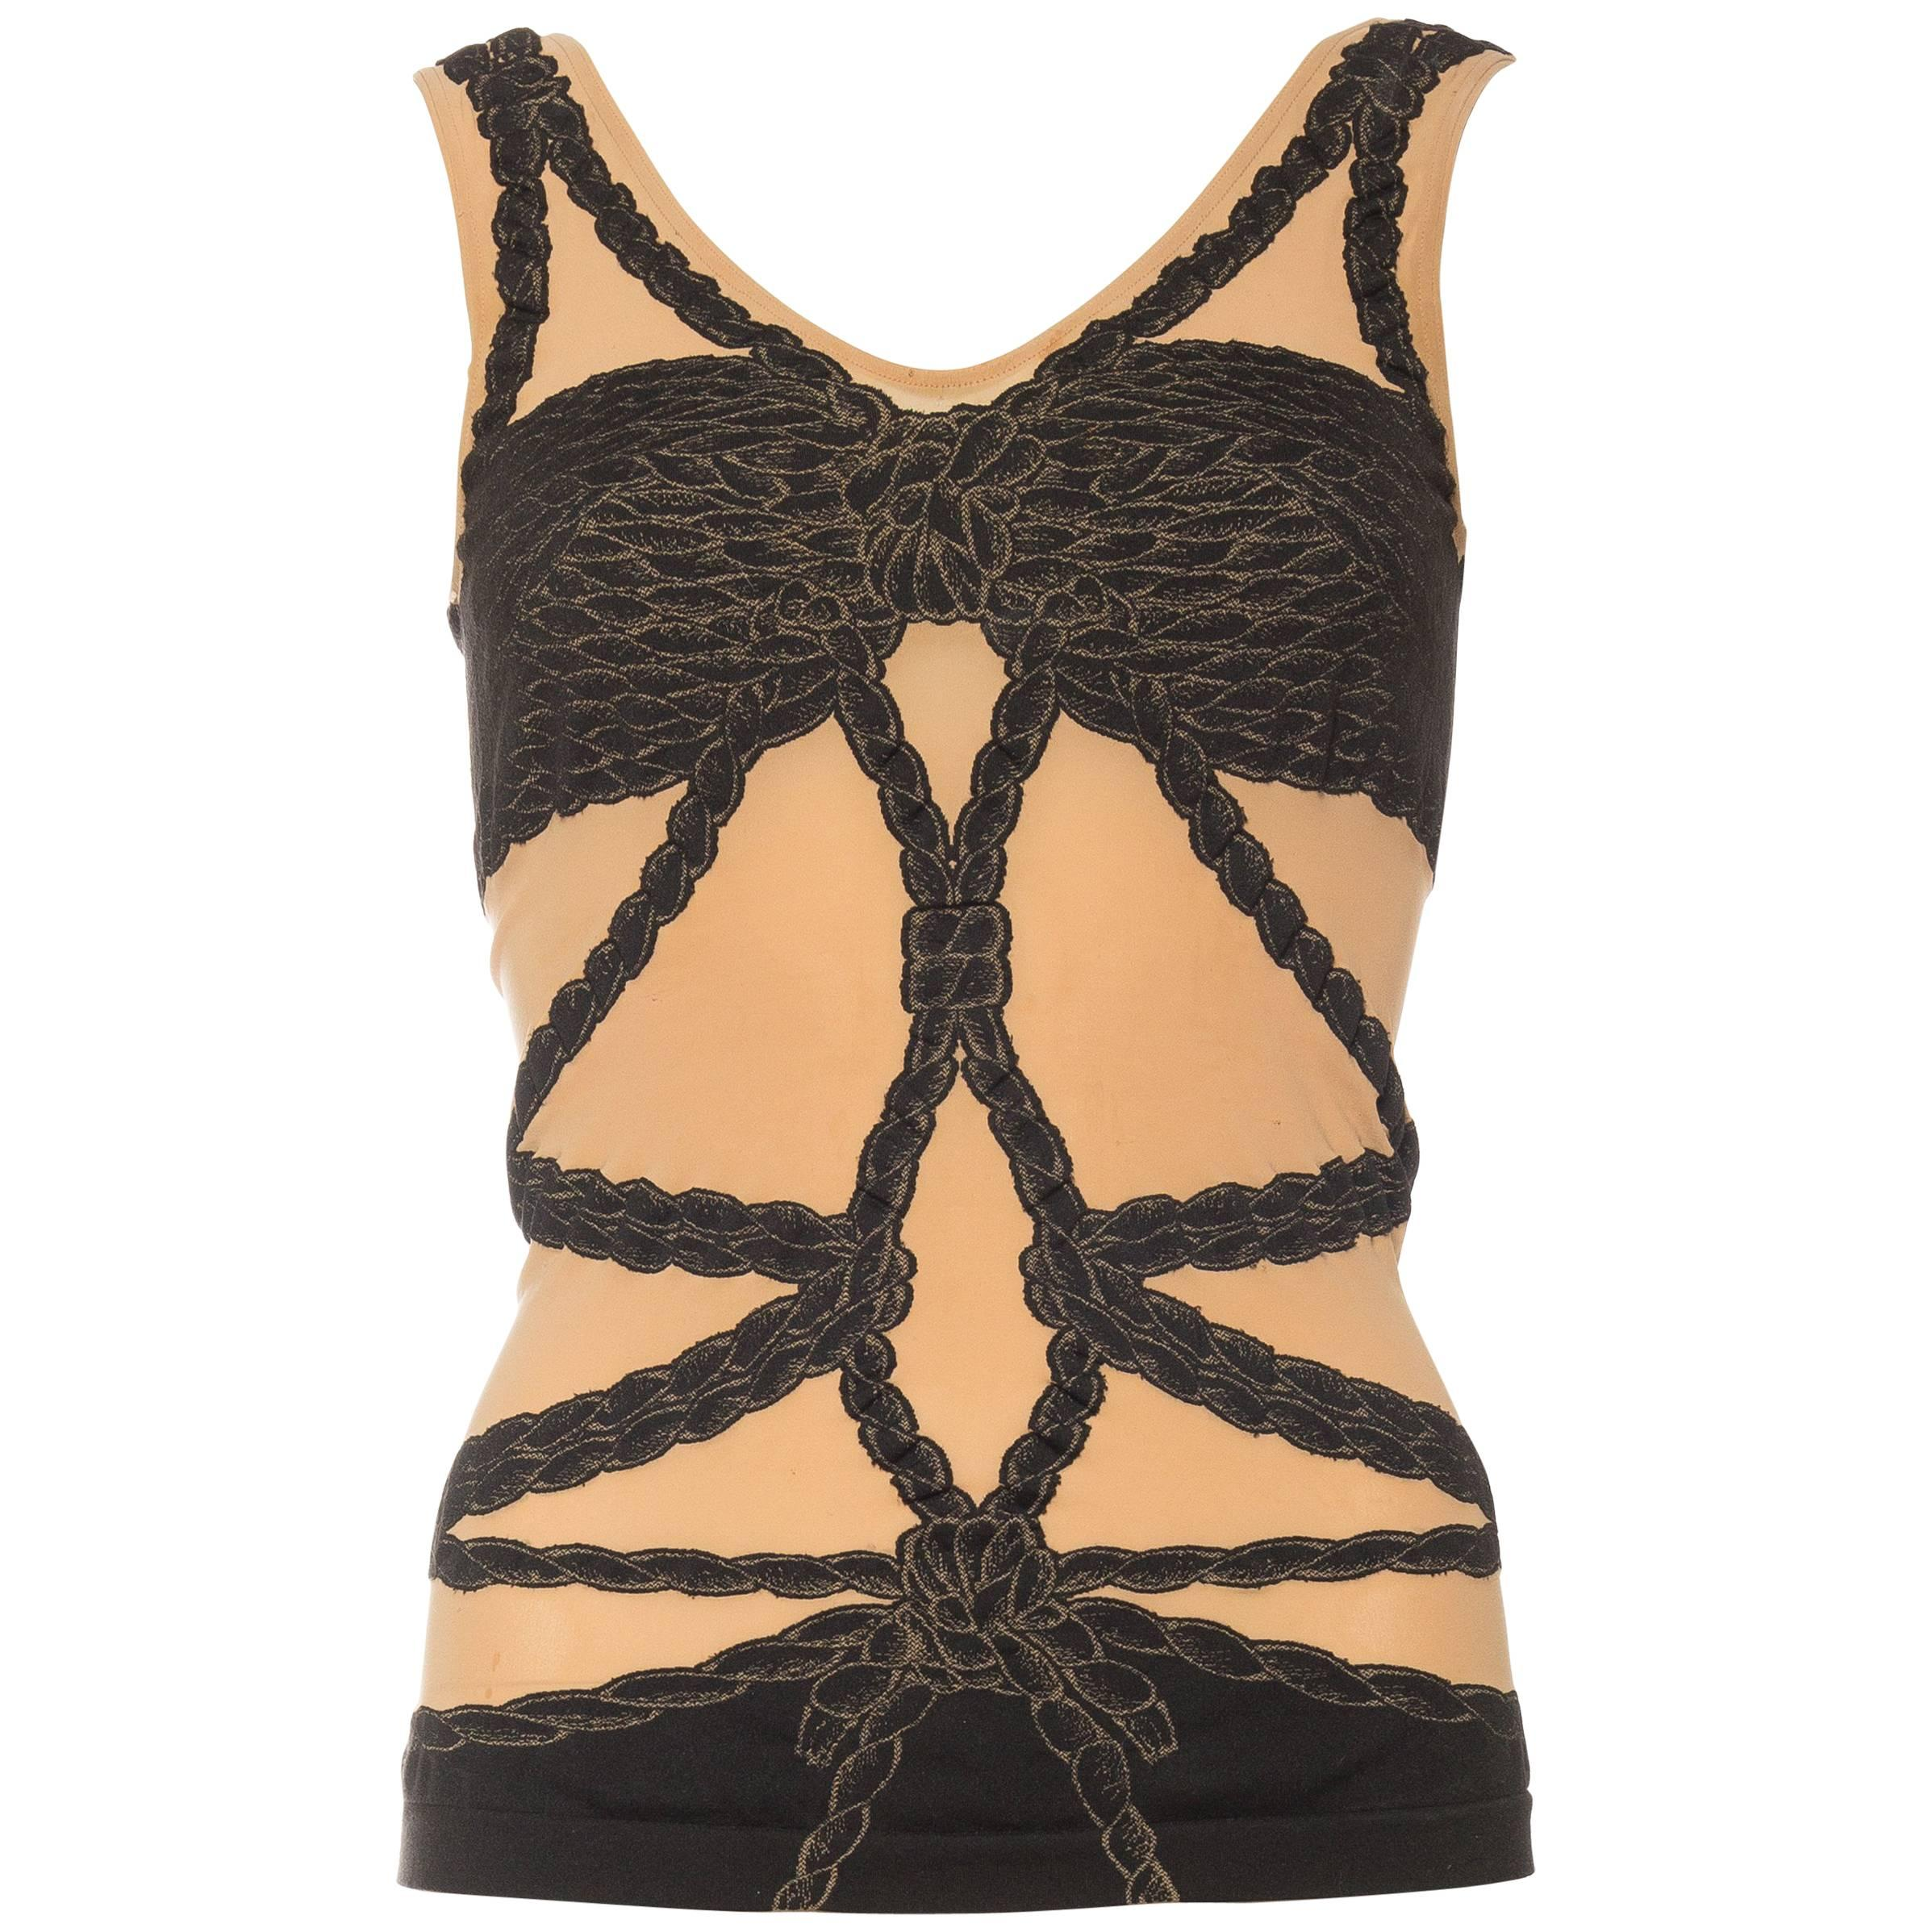 1990S ZAC POSEN Spandex Knit Rope Bondage Top By Wolford